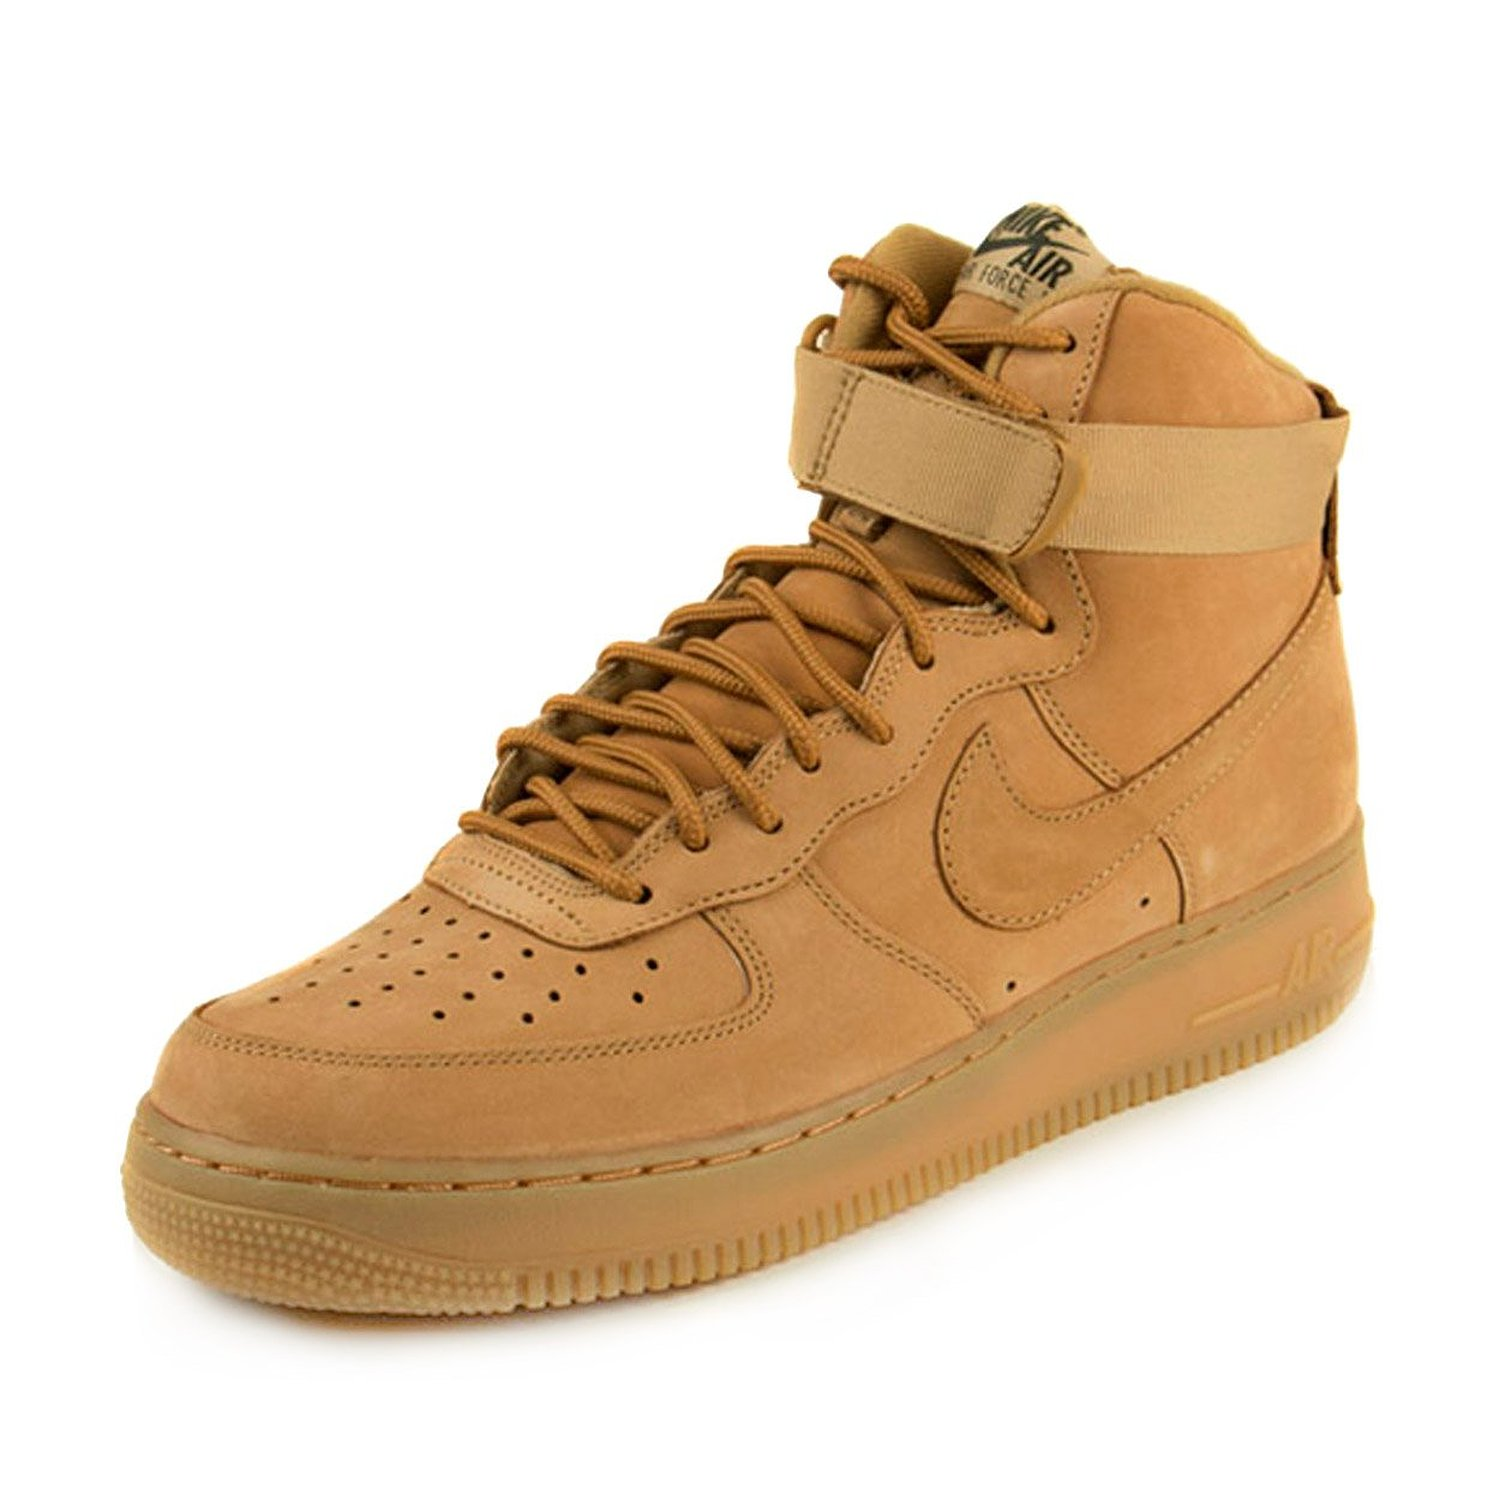 87266f0baeb597 ... czech amazon nike mens air force 1 high 07 lv8 wheat flax outdoor green  leather shoes ...